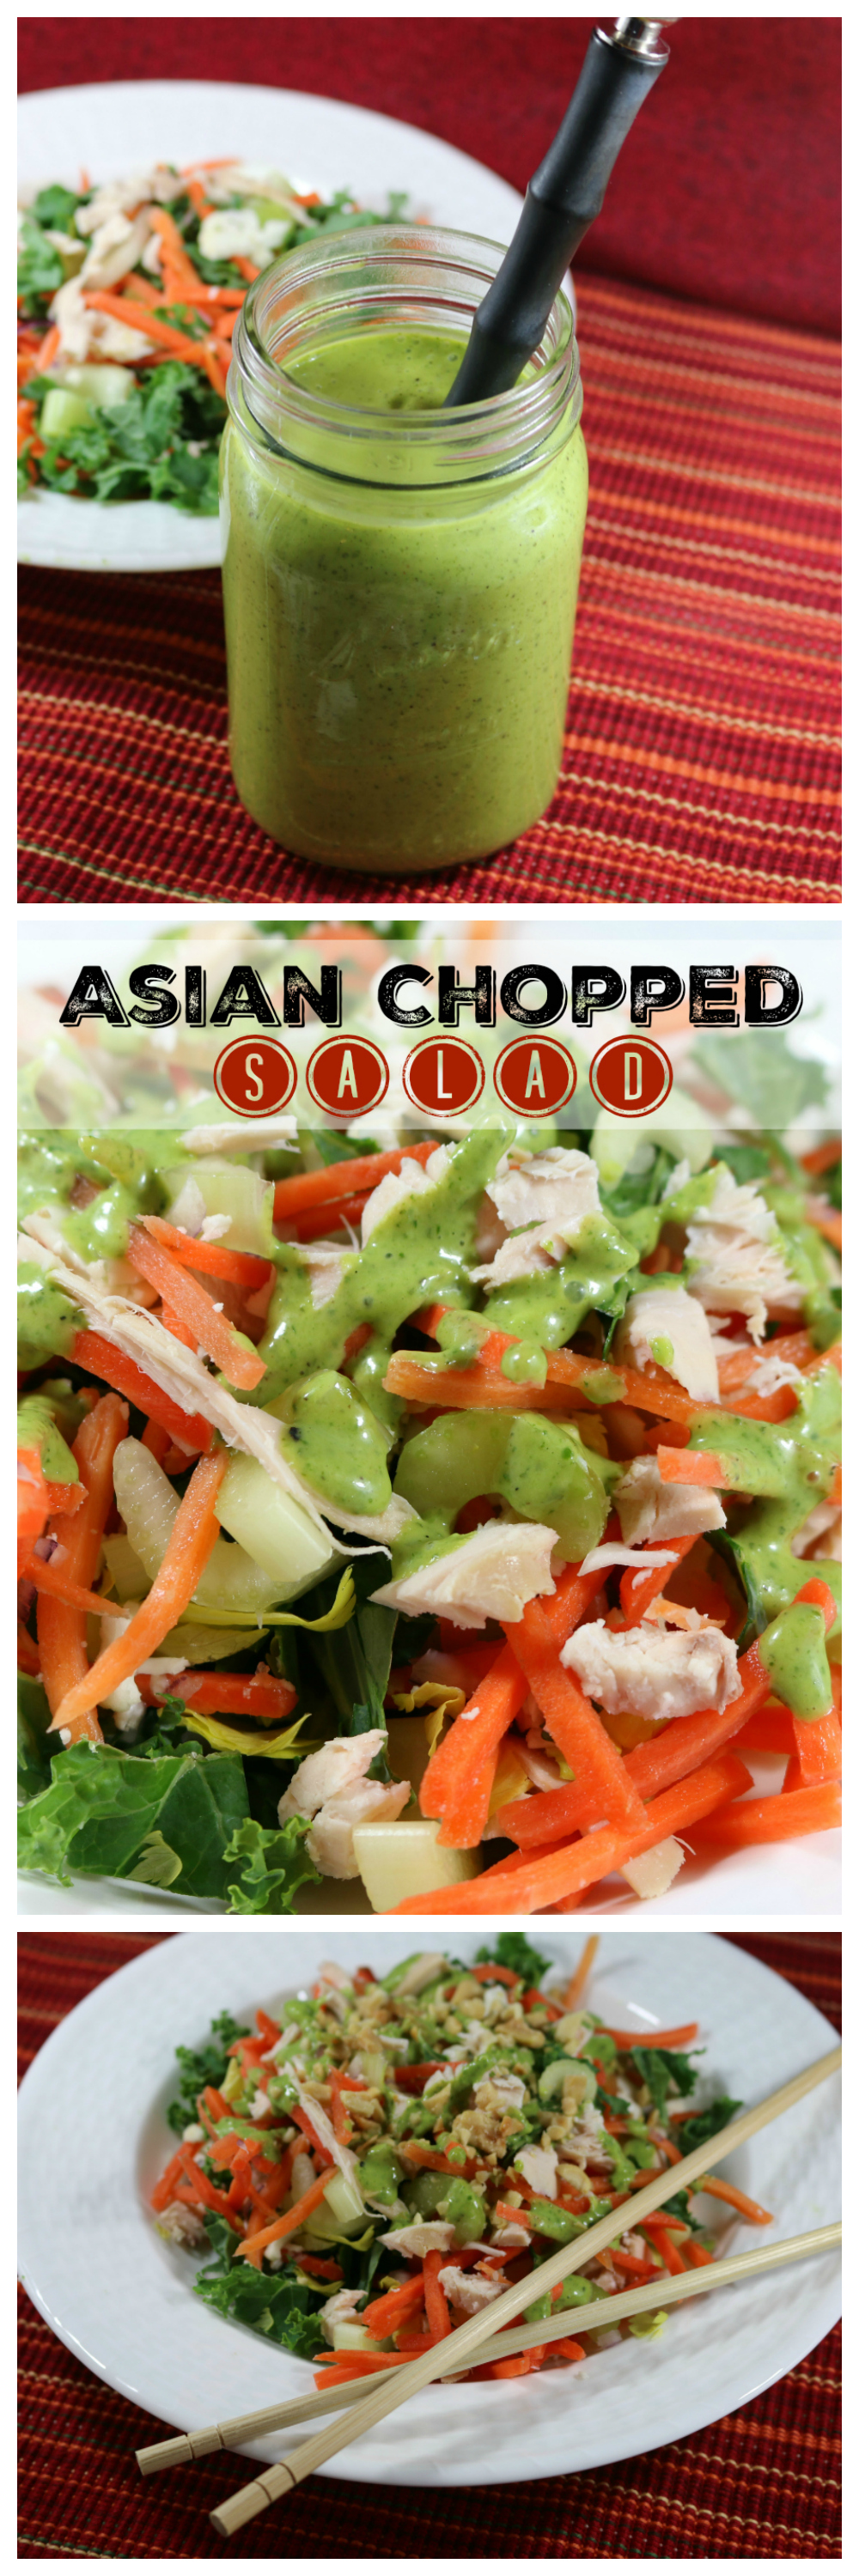 Asian Chopped Salad with Cilantro Lime Dressing CeceliasGoodStuff.com Good Food for Good People